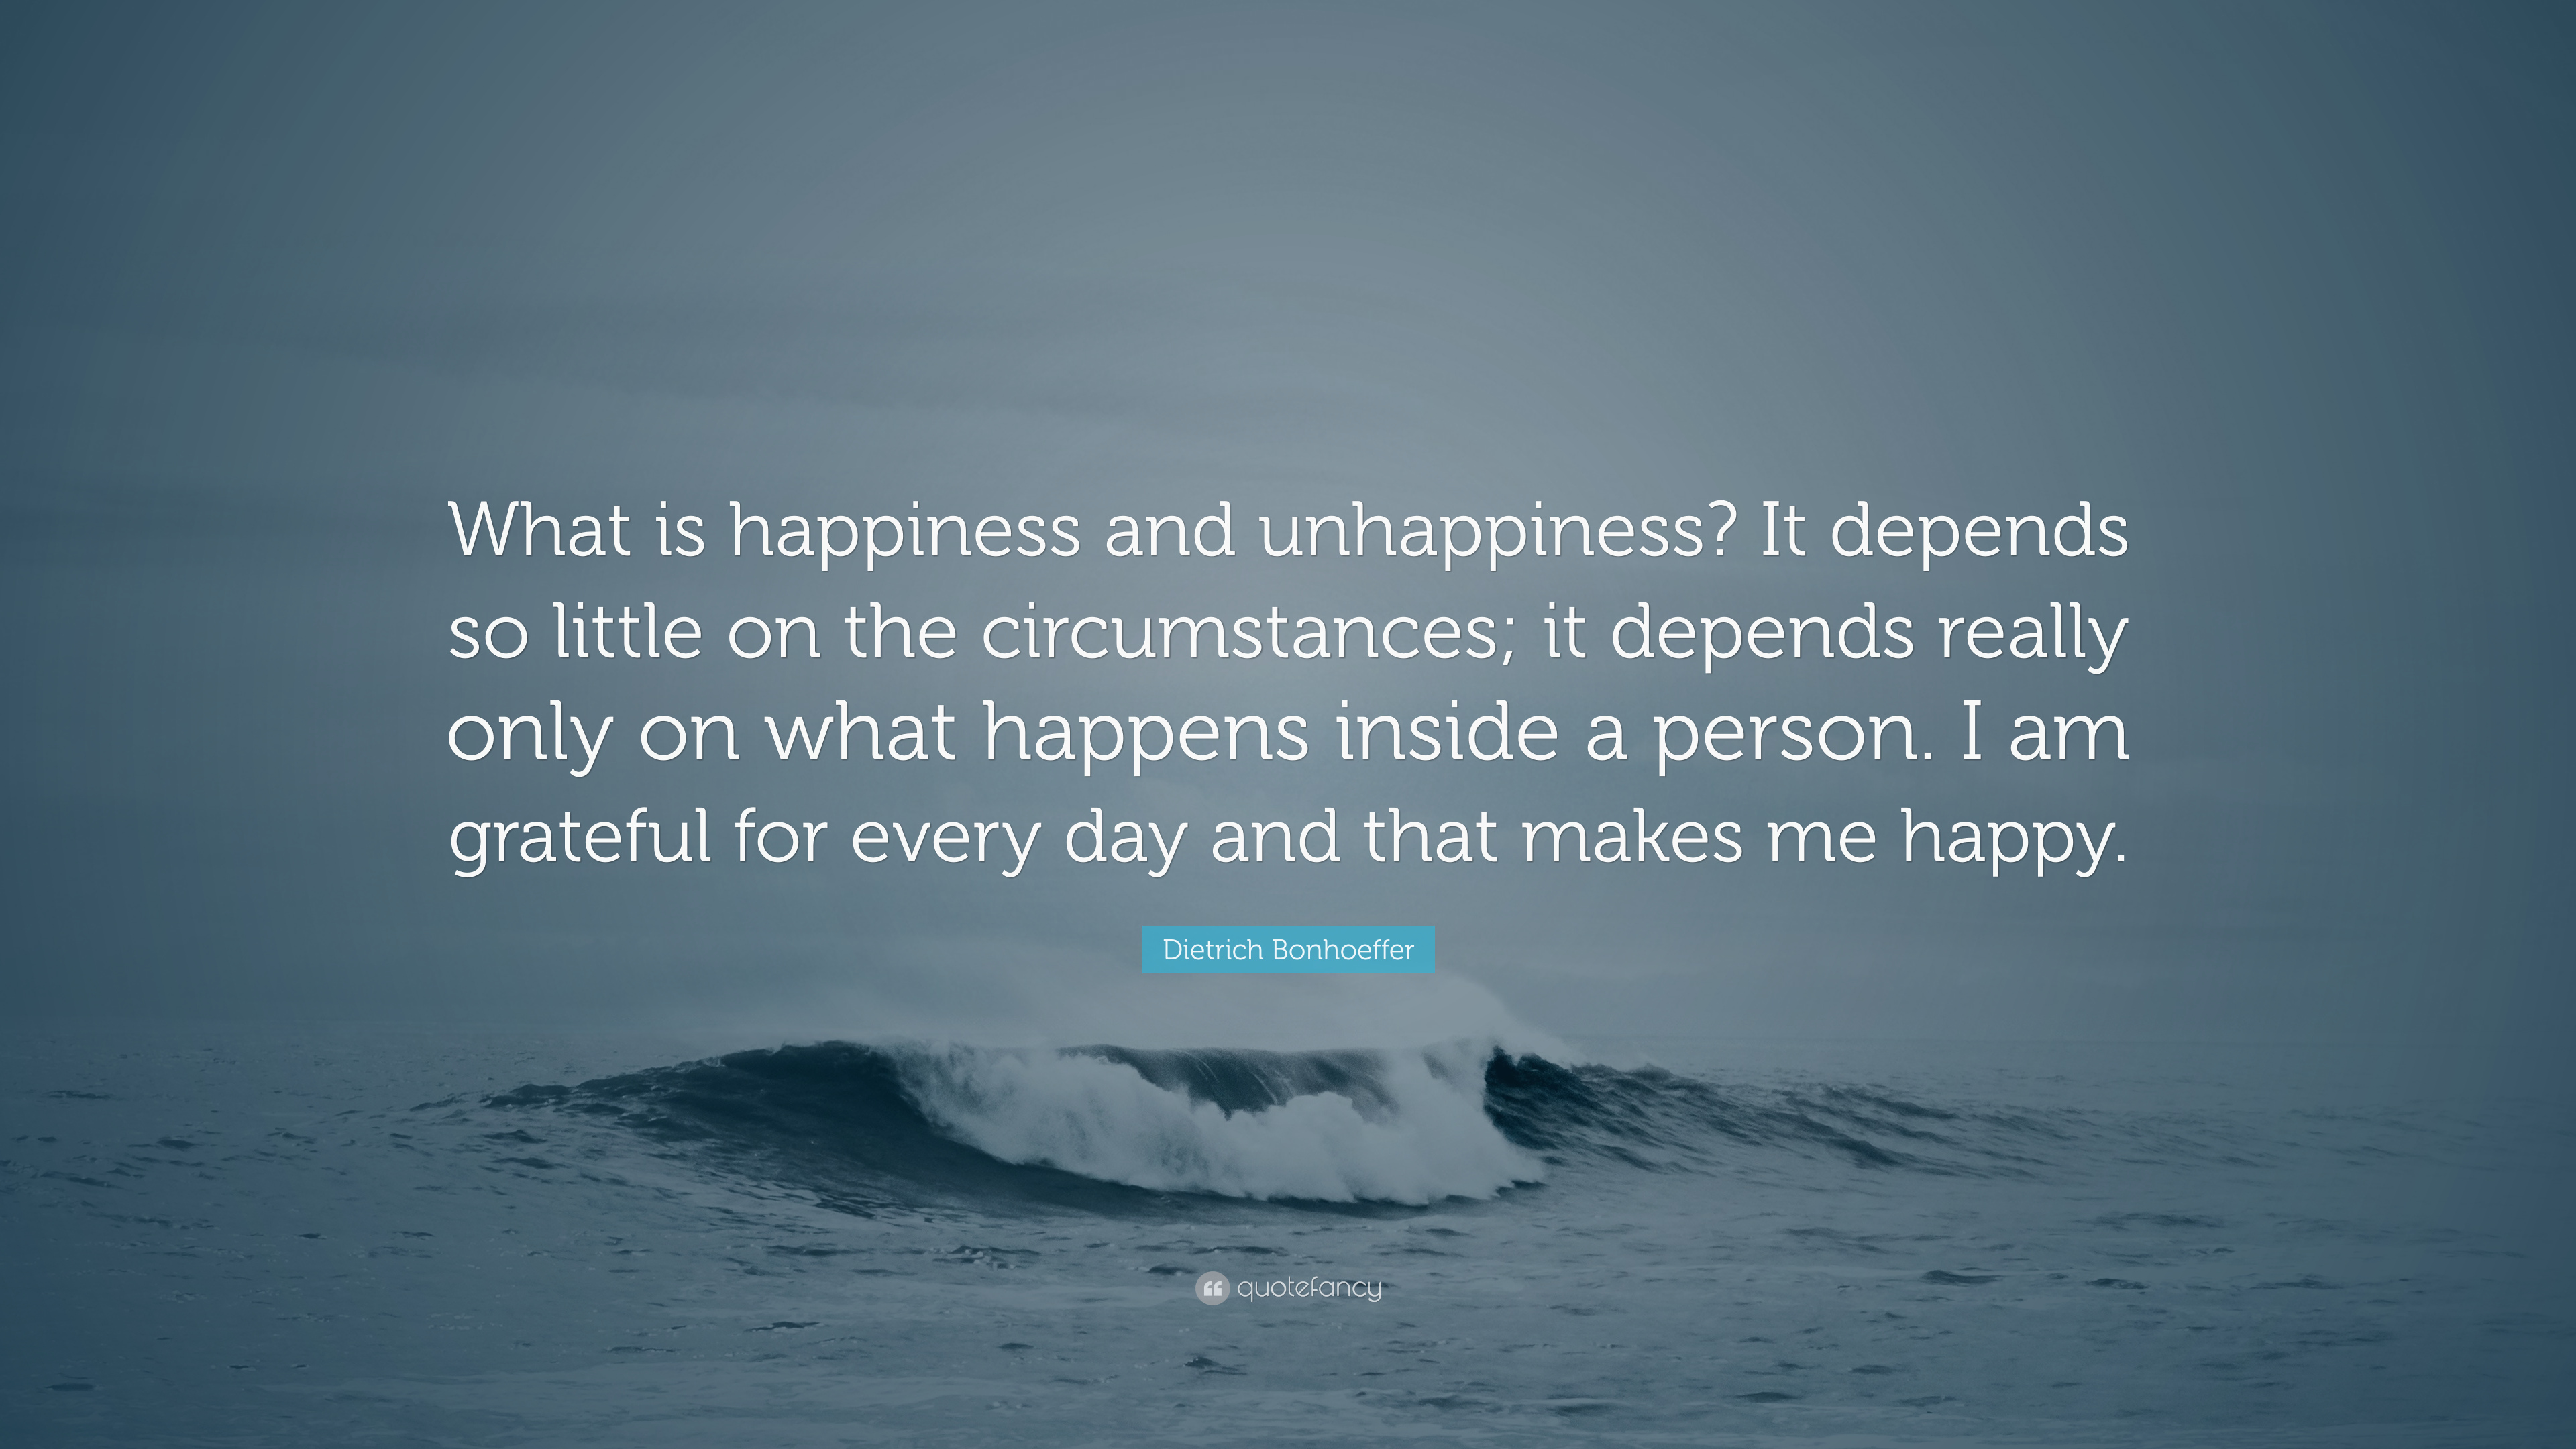 Image of: Sayings Dietrich Bonhoeffer Quote what Is Happiness And Unhappiness It Depends So Little On We Heart It Dietrich Bonhoeffer Quote what Is Happiness And Unhappiness It